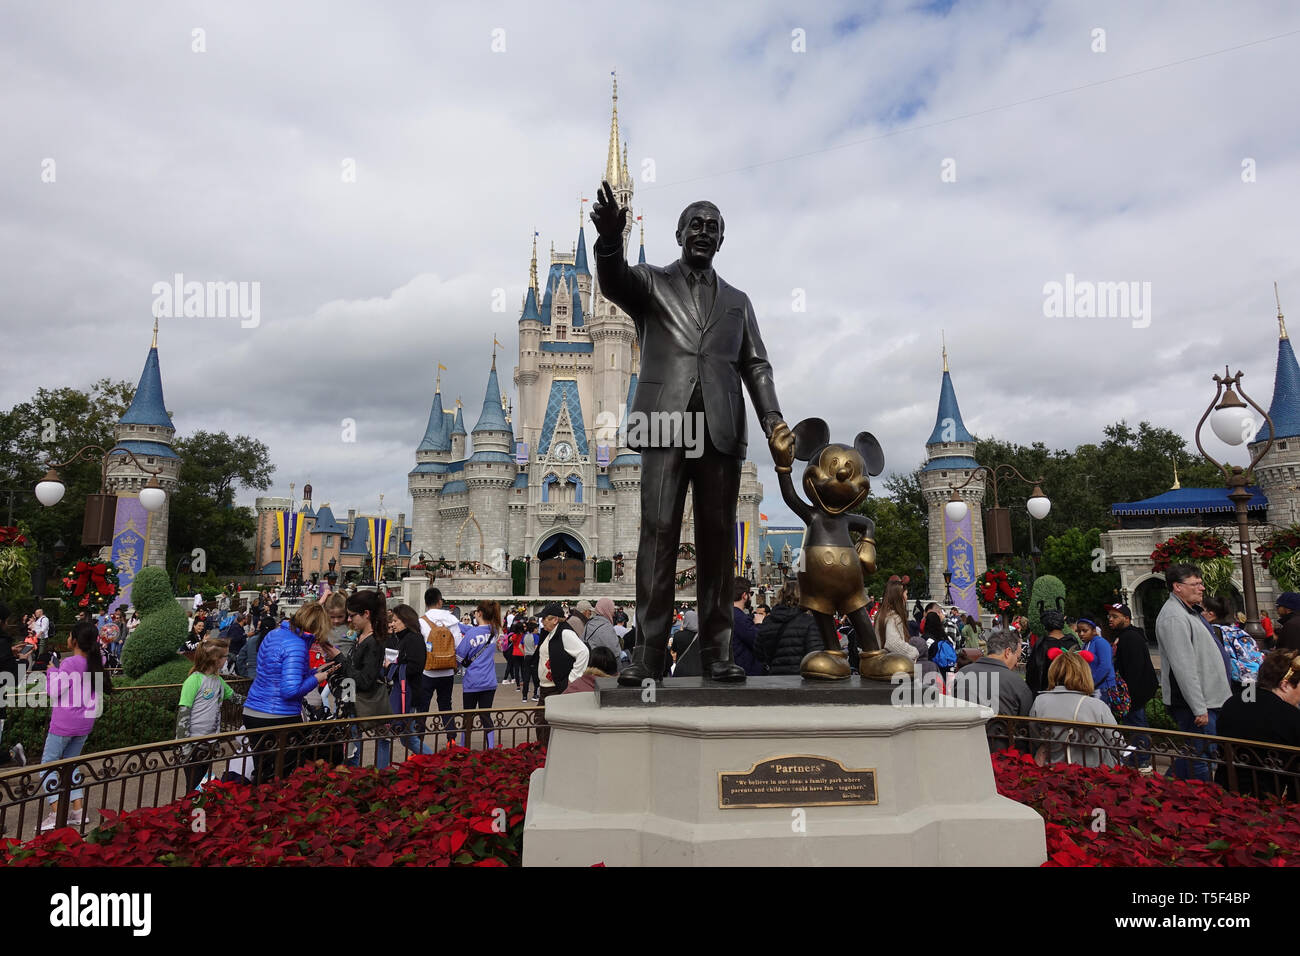 Orlando, FL/USA - 12/10/18: Front horizonal view of Walt Disney and Mickey Mouse Partners statue in front of Cinderellas Castle  at Disney World in Or - Stock Image